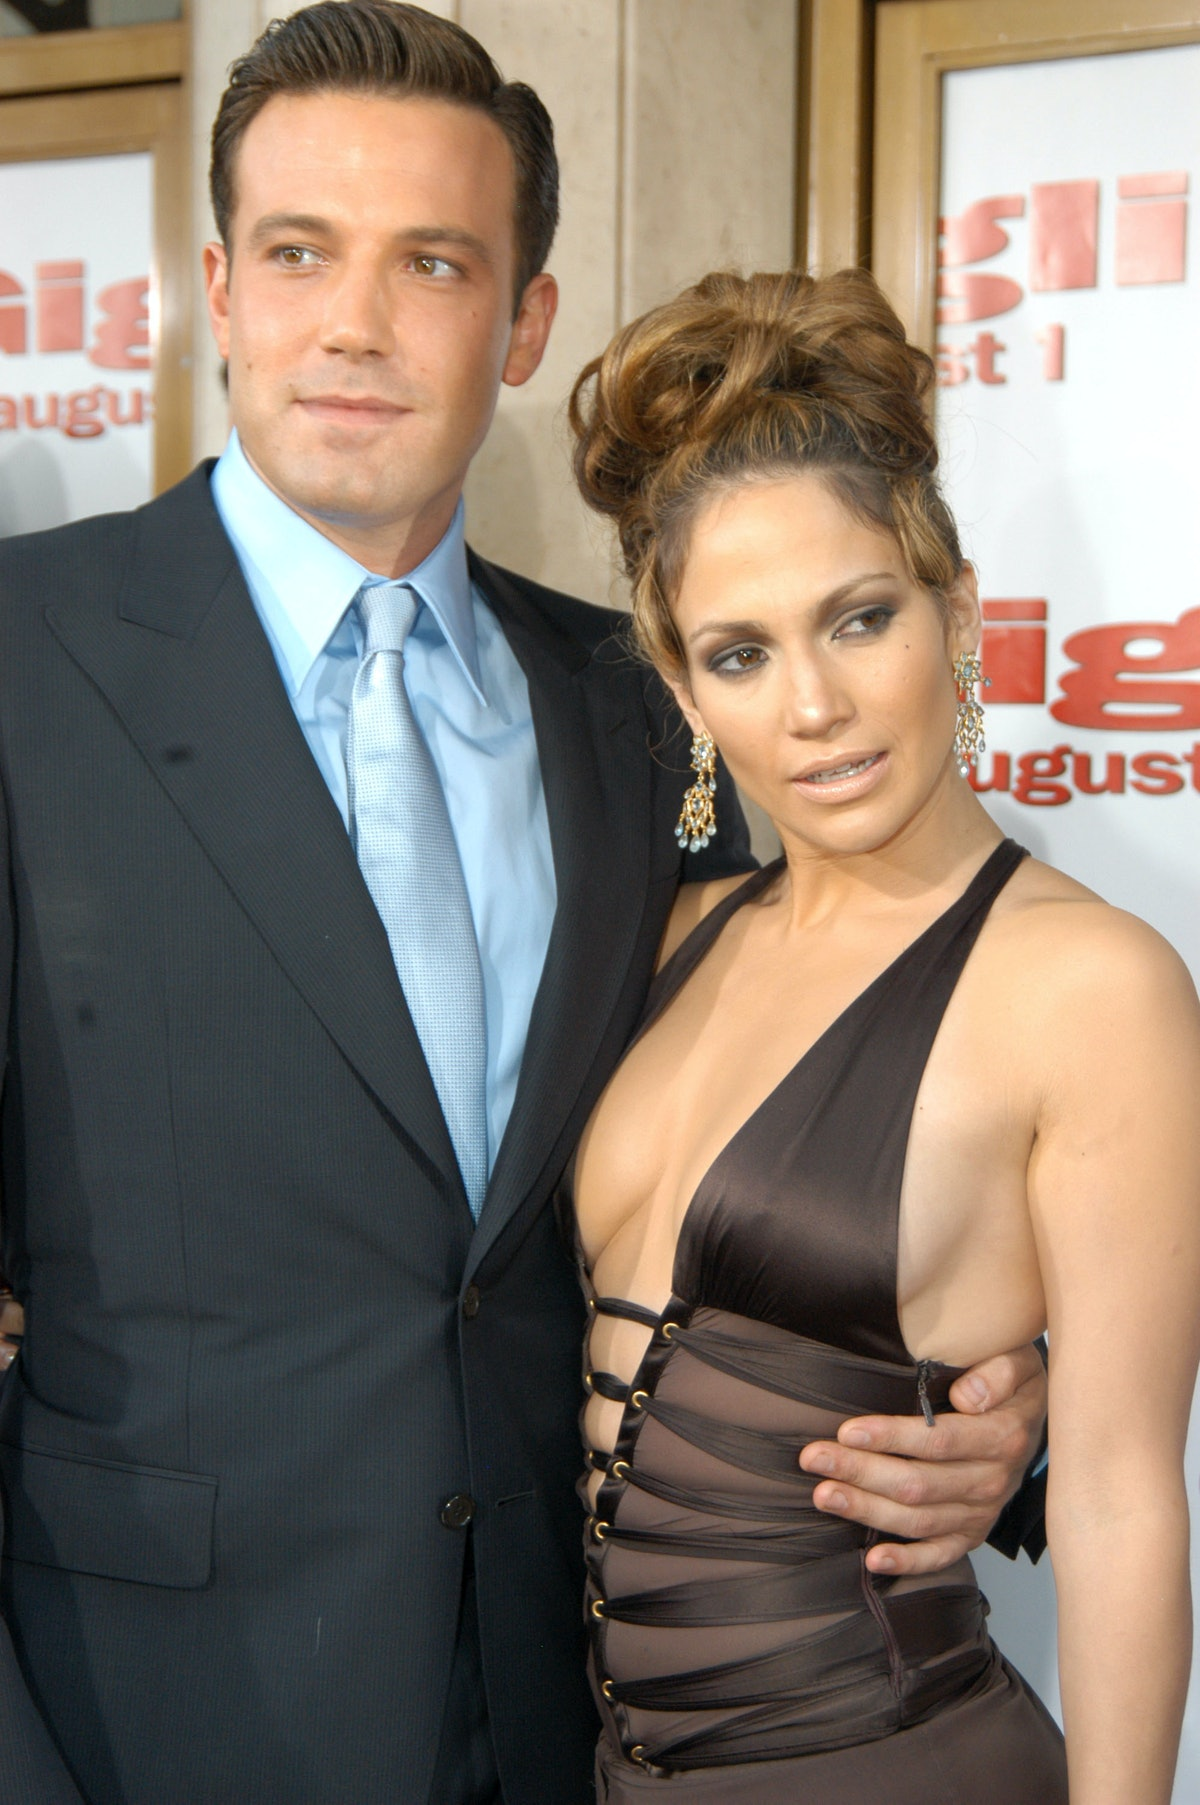 Things are reportedly getting serious between Ben Affleck and Jennifer Lopez